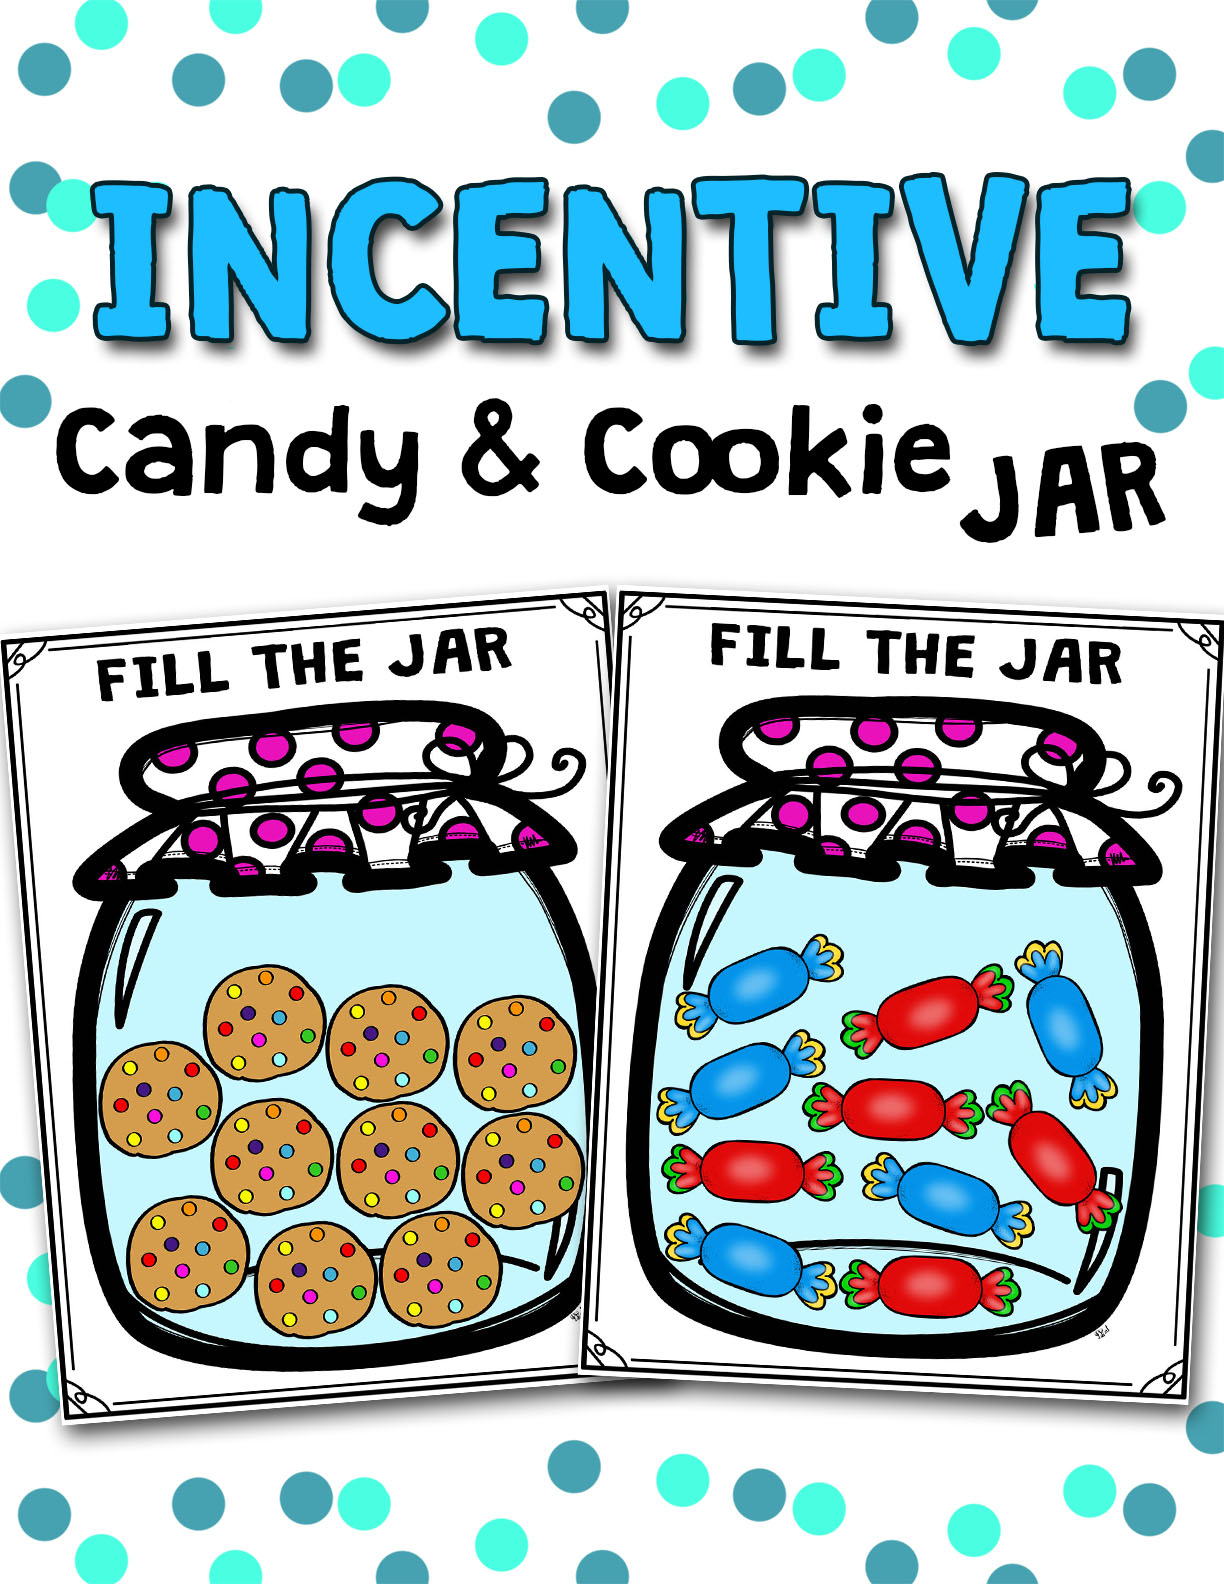 Class Incentive Compliment Candy and Cookie Jar